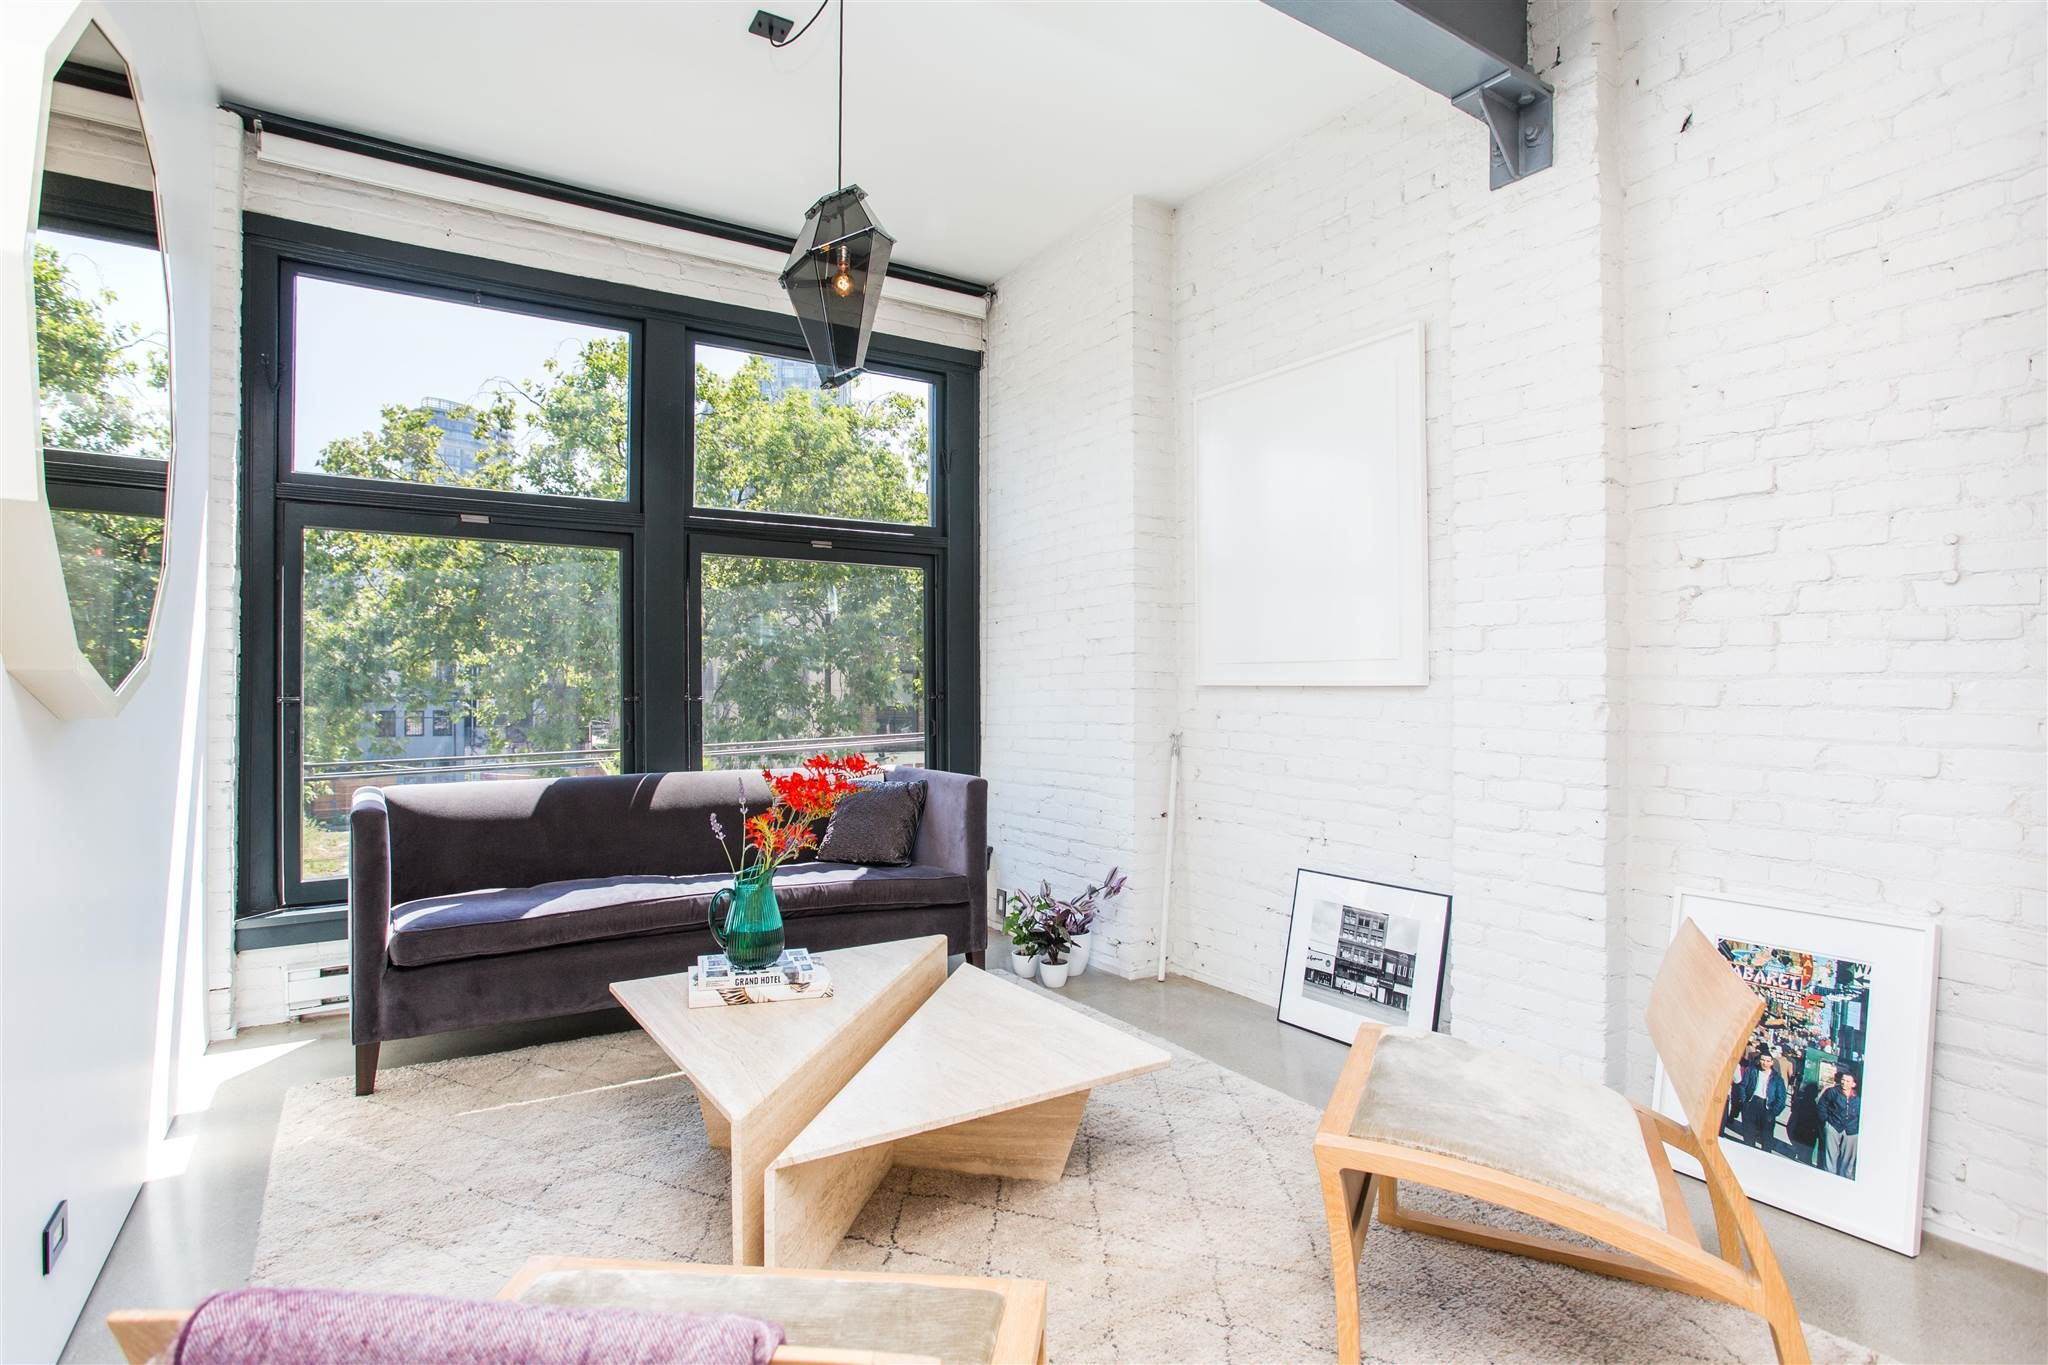 """Main Photo: 303 53 W HASTINGS Street in Vancouver: Downtown VW Condo for sale in """"Paris Block"""" (Vancouver West)  : MLS®# R2600726"""